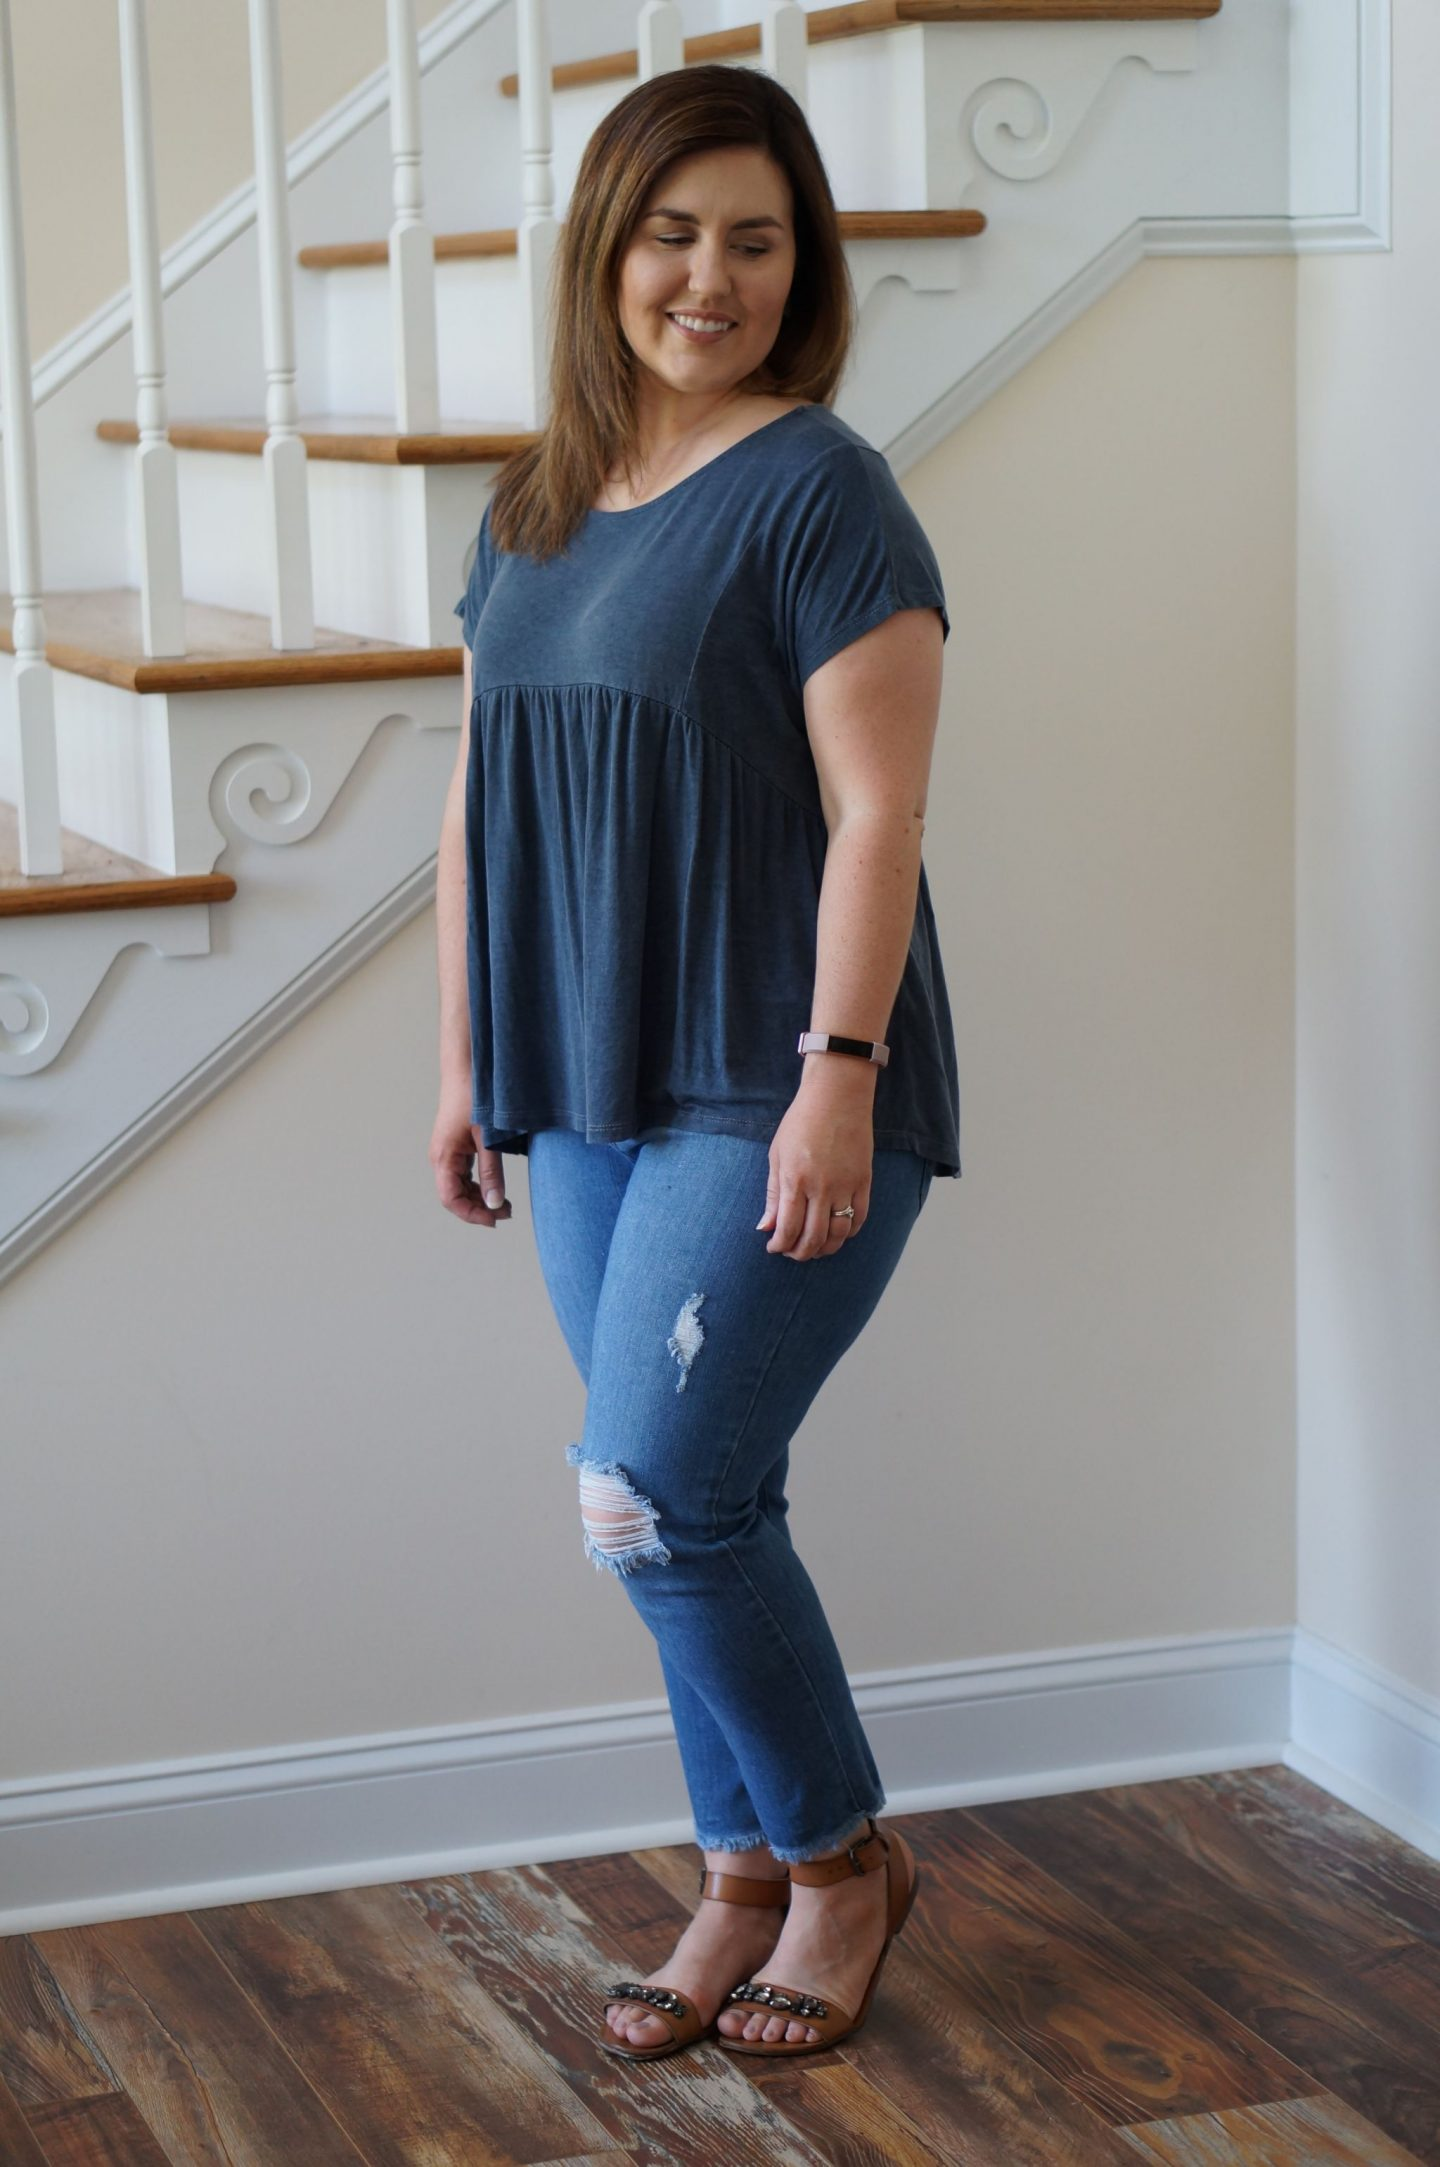 If you've ever wondered what to do with your purchases from Stitch Fix, here is one outfit inspiration for the weekend! Just USA Denim jeans are so comfy!